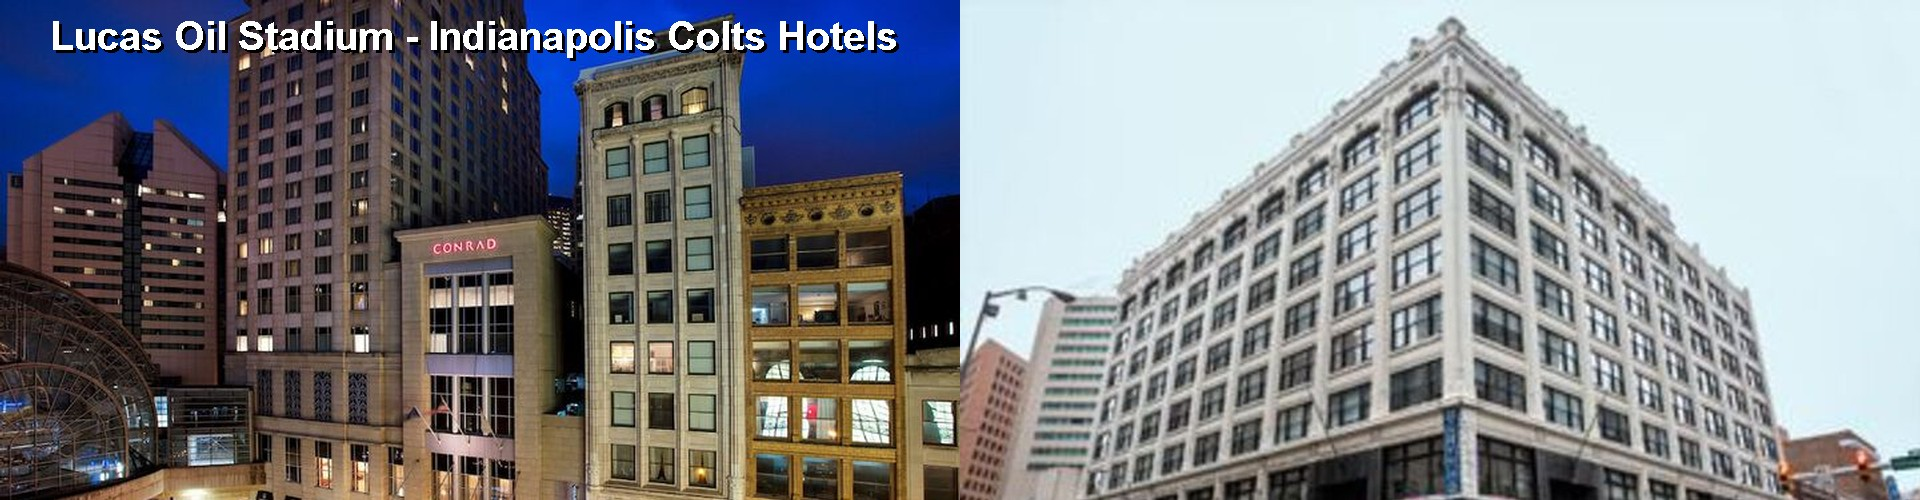 5 Best Hotels Near Lucas Oil Stadium Indianapolis Colts